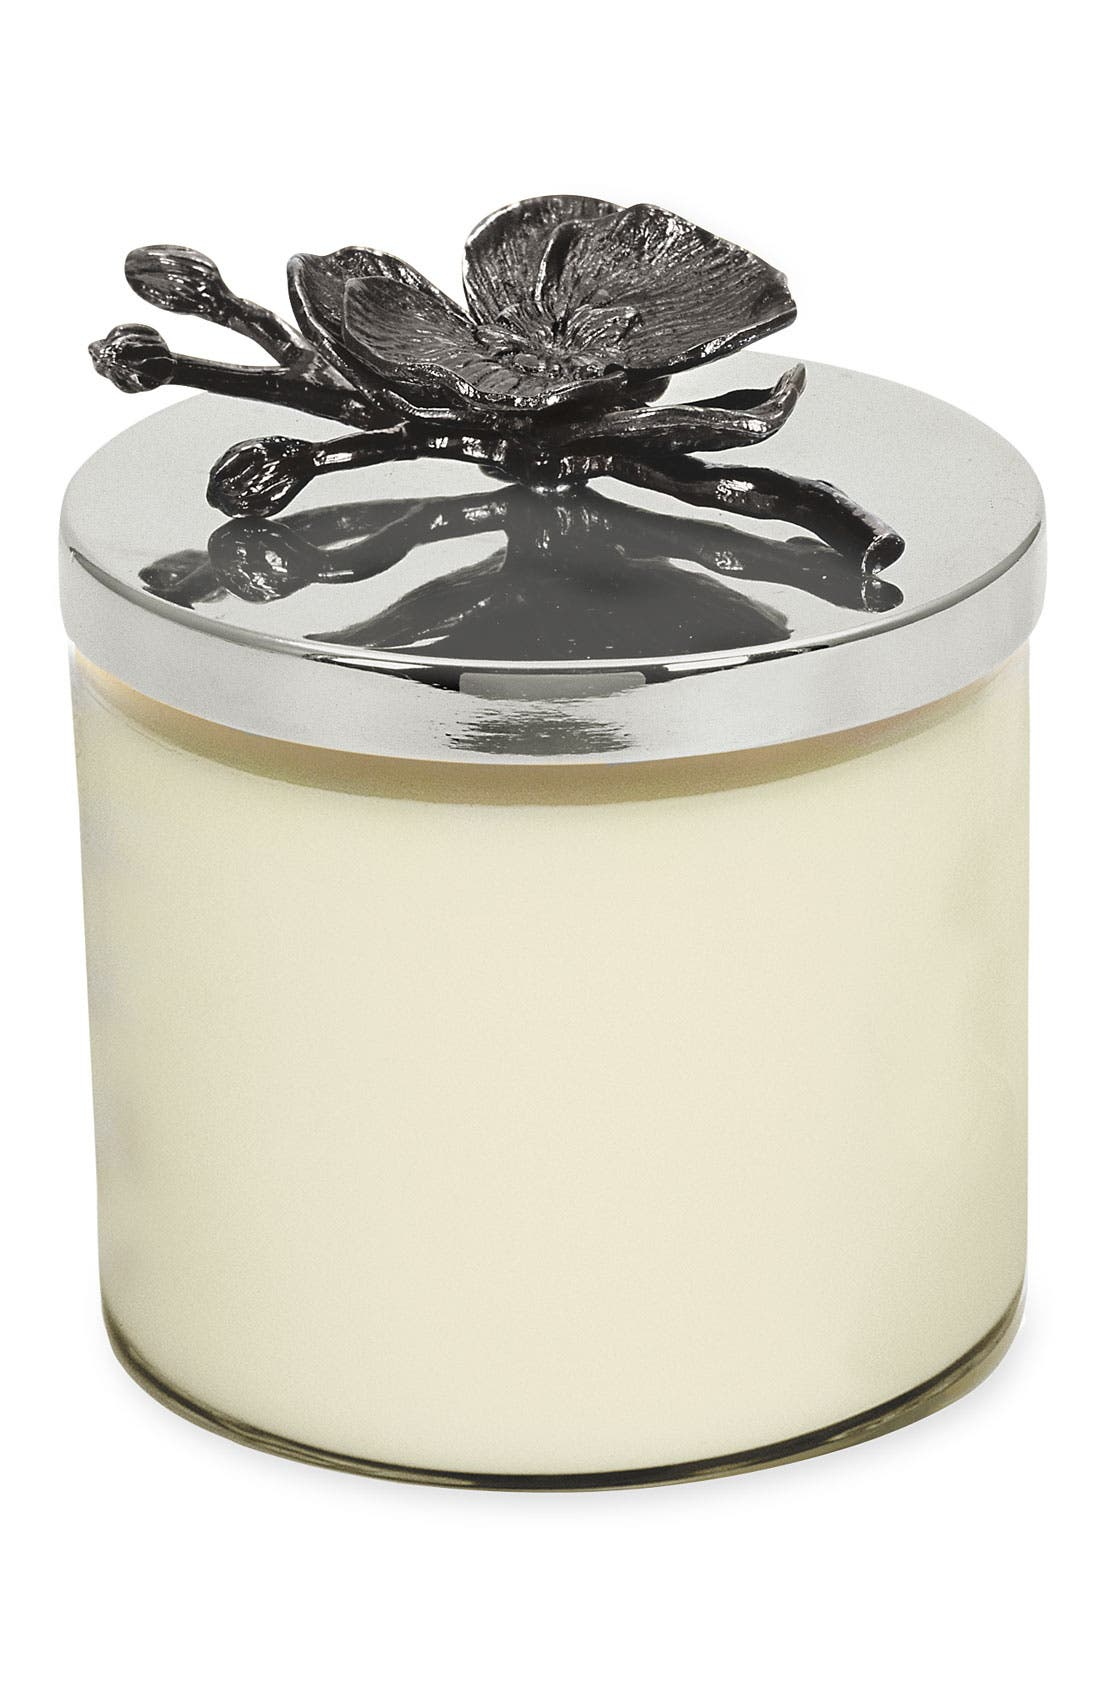 Main Image - Michael Aram 'Black Orchid' Soy Wax Candle